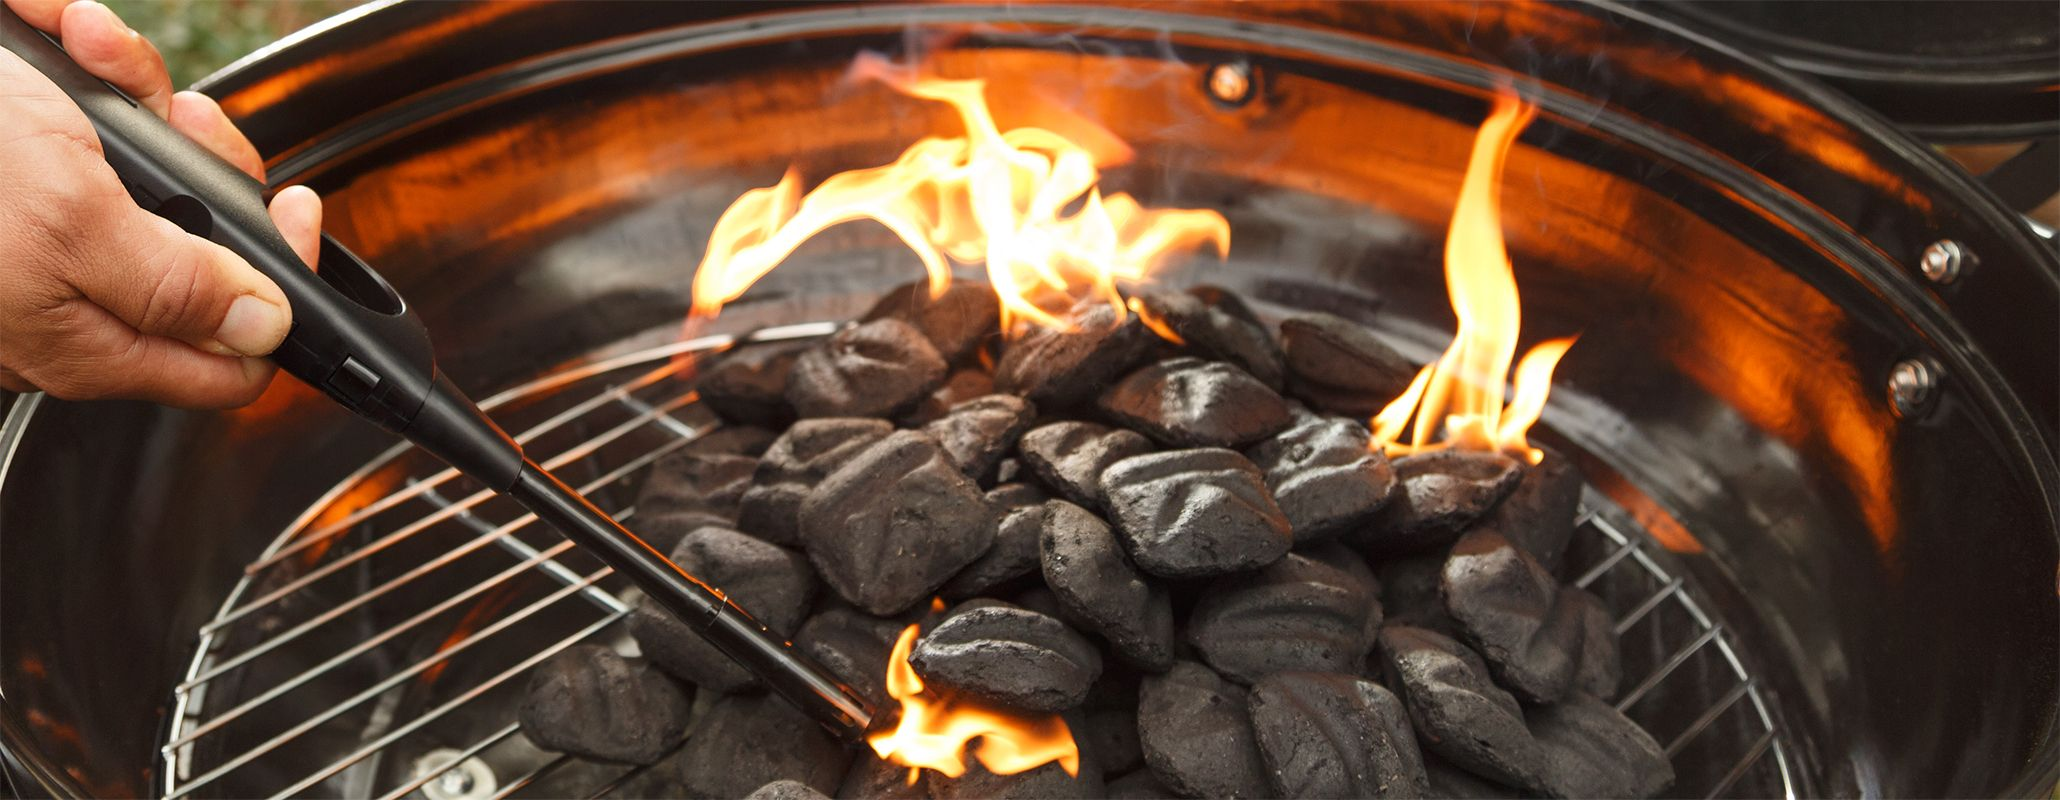 how to light kingsford original charcoal without lighter fluid